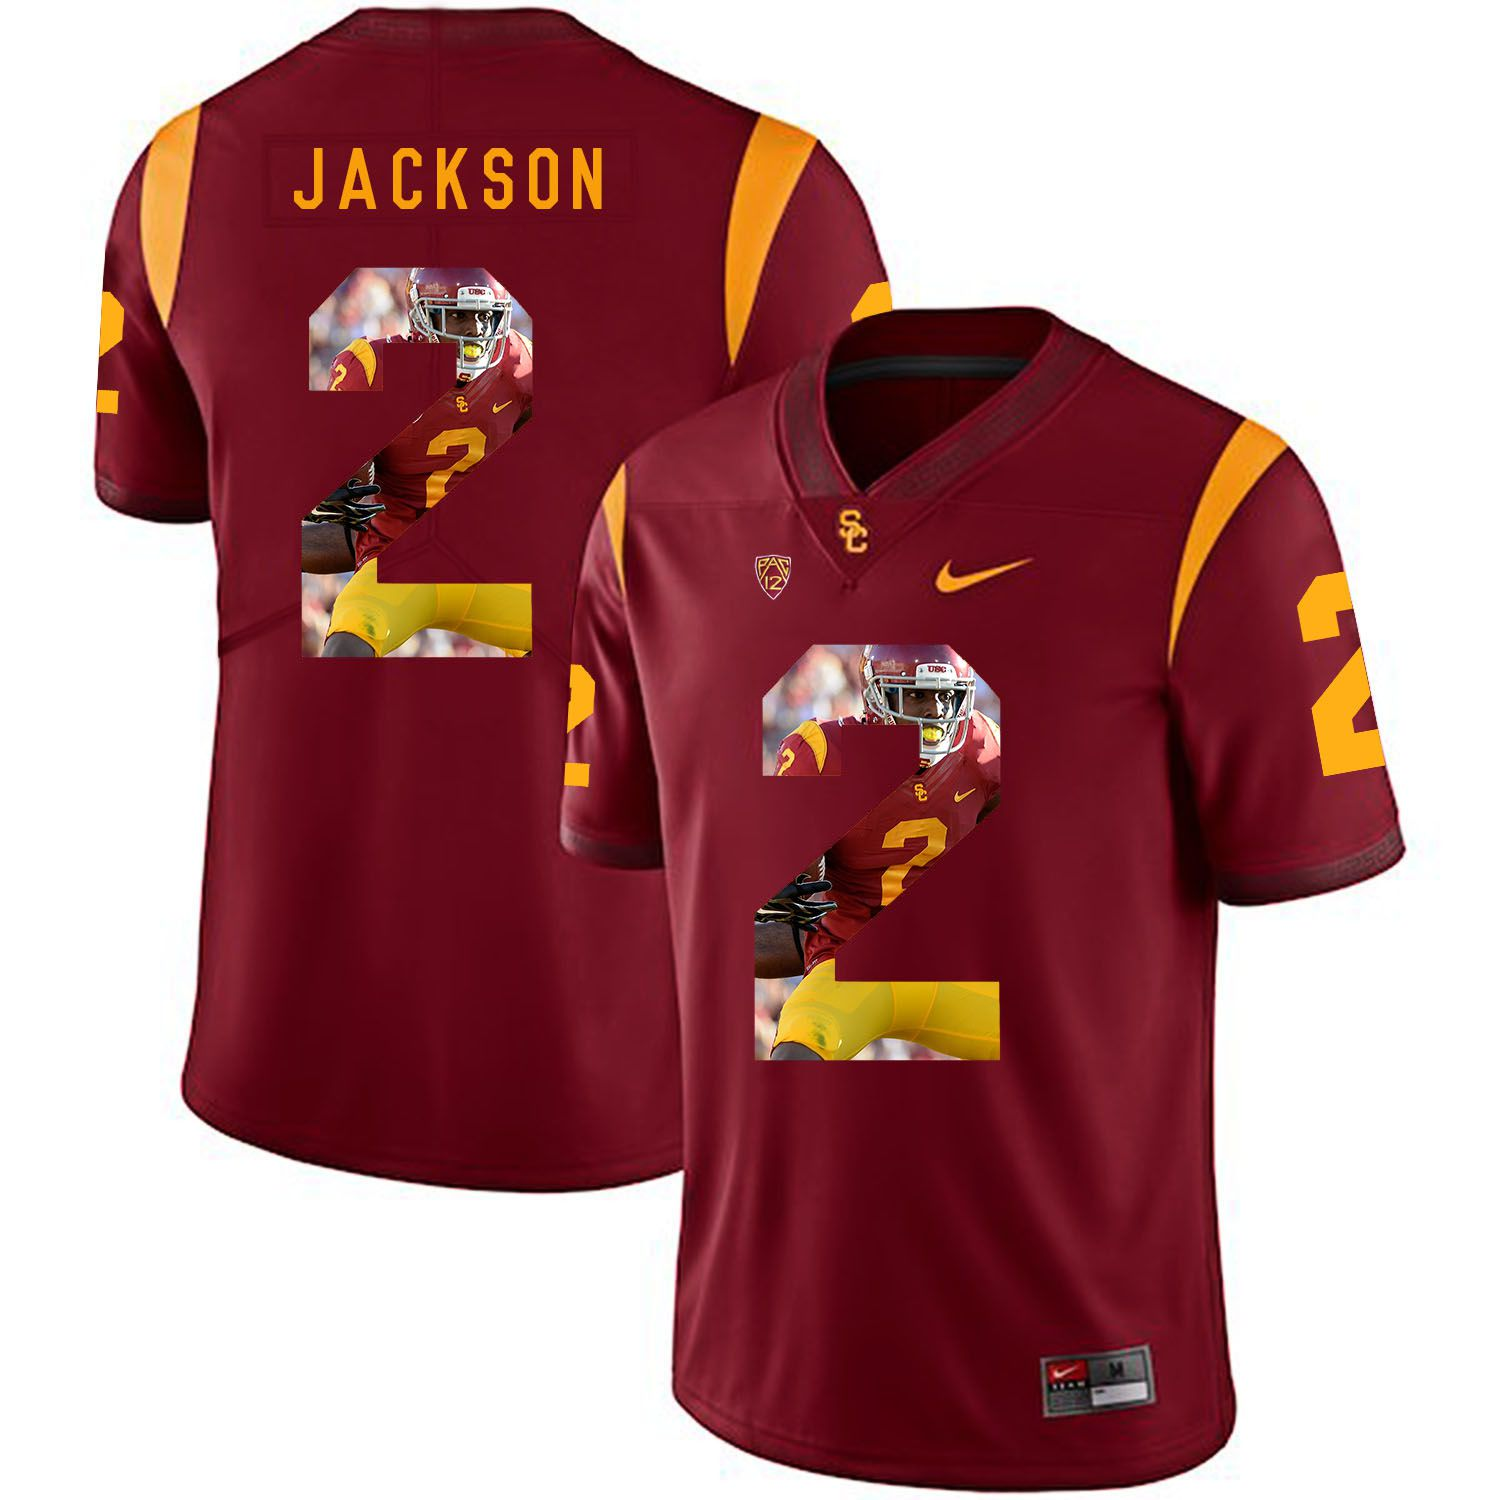 Men USC Trojans 2 Jackson Red Fashion Edition Customized NCAA Jerseys